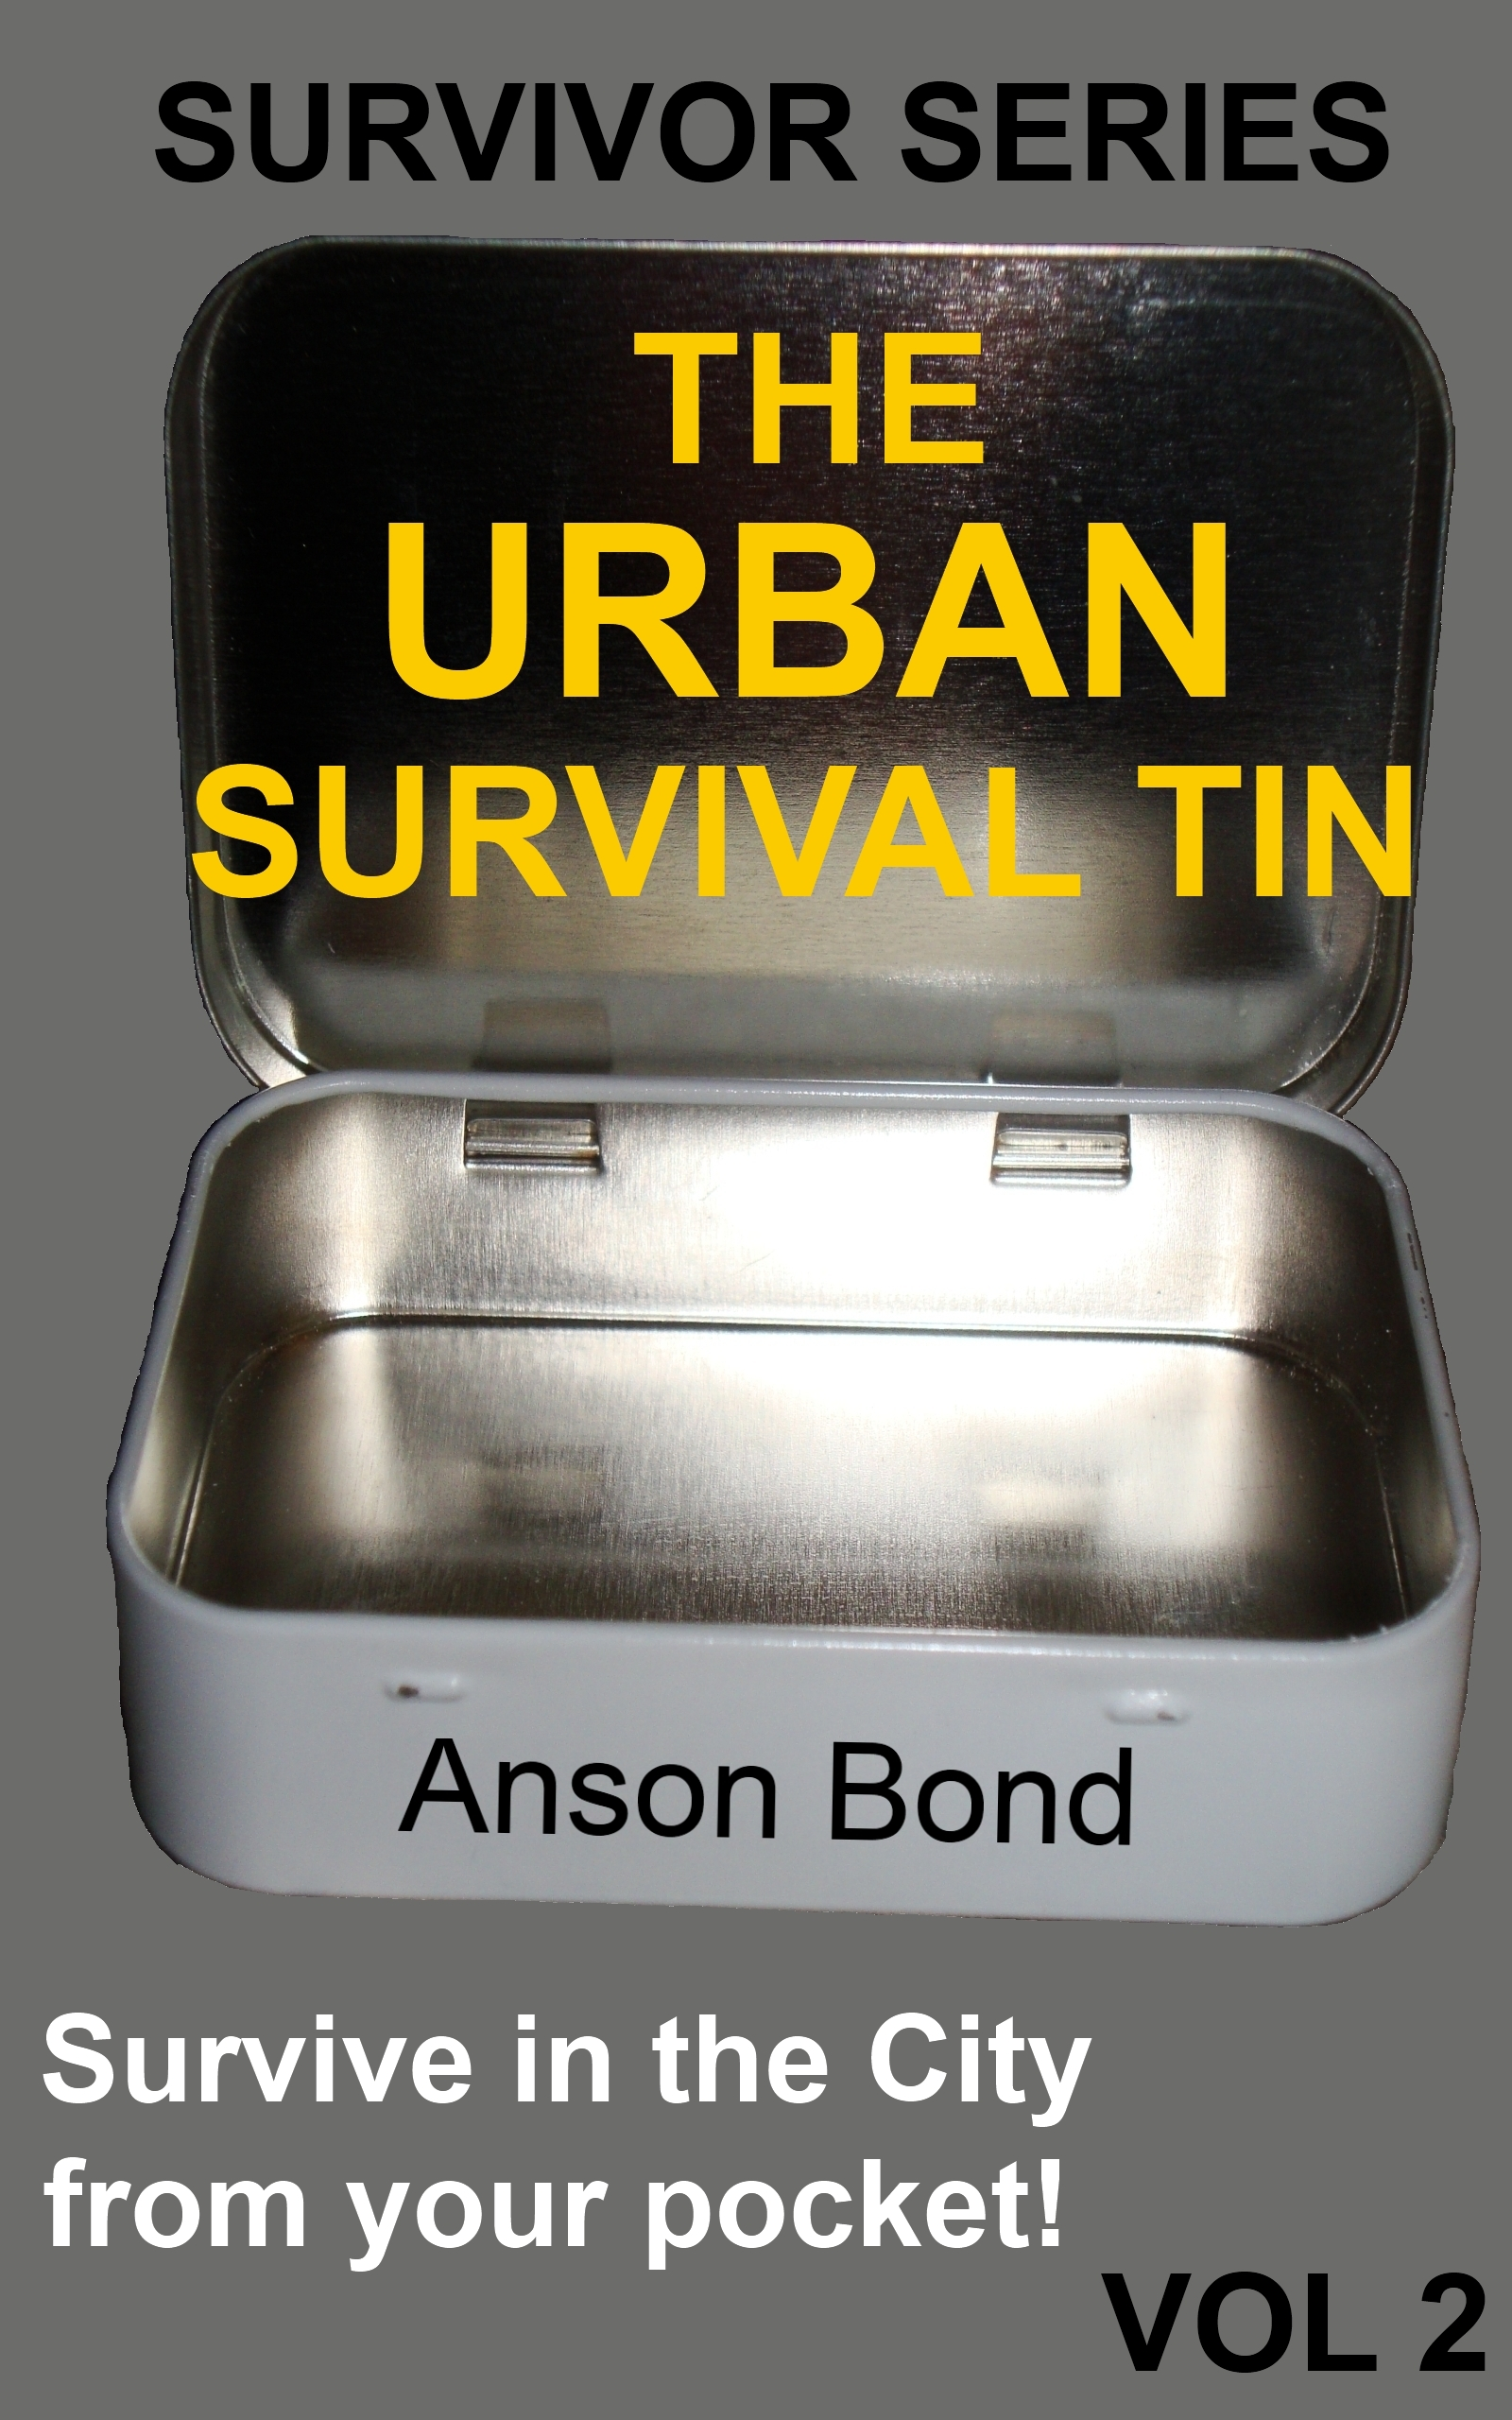 The Urban Survival Tin